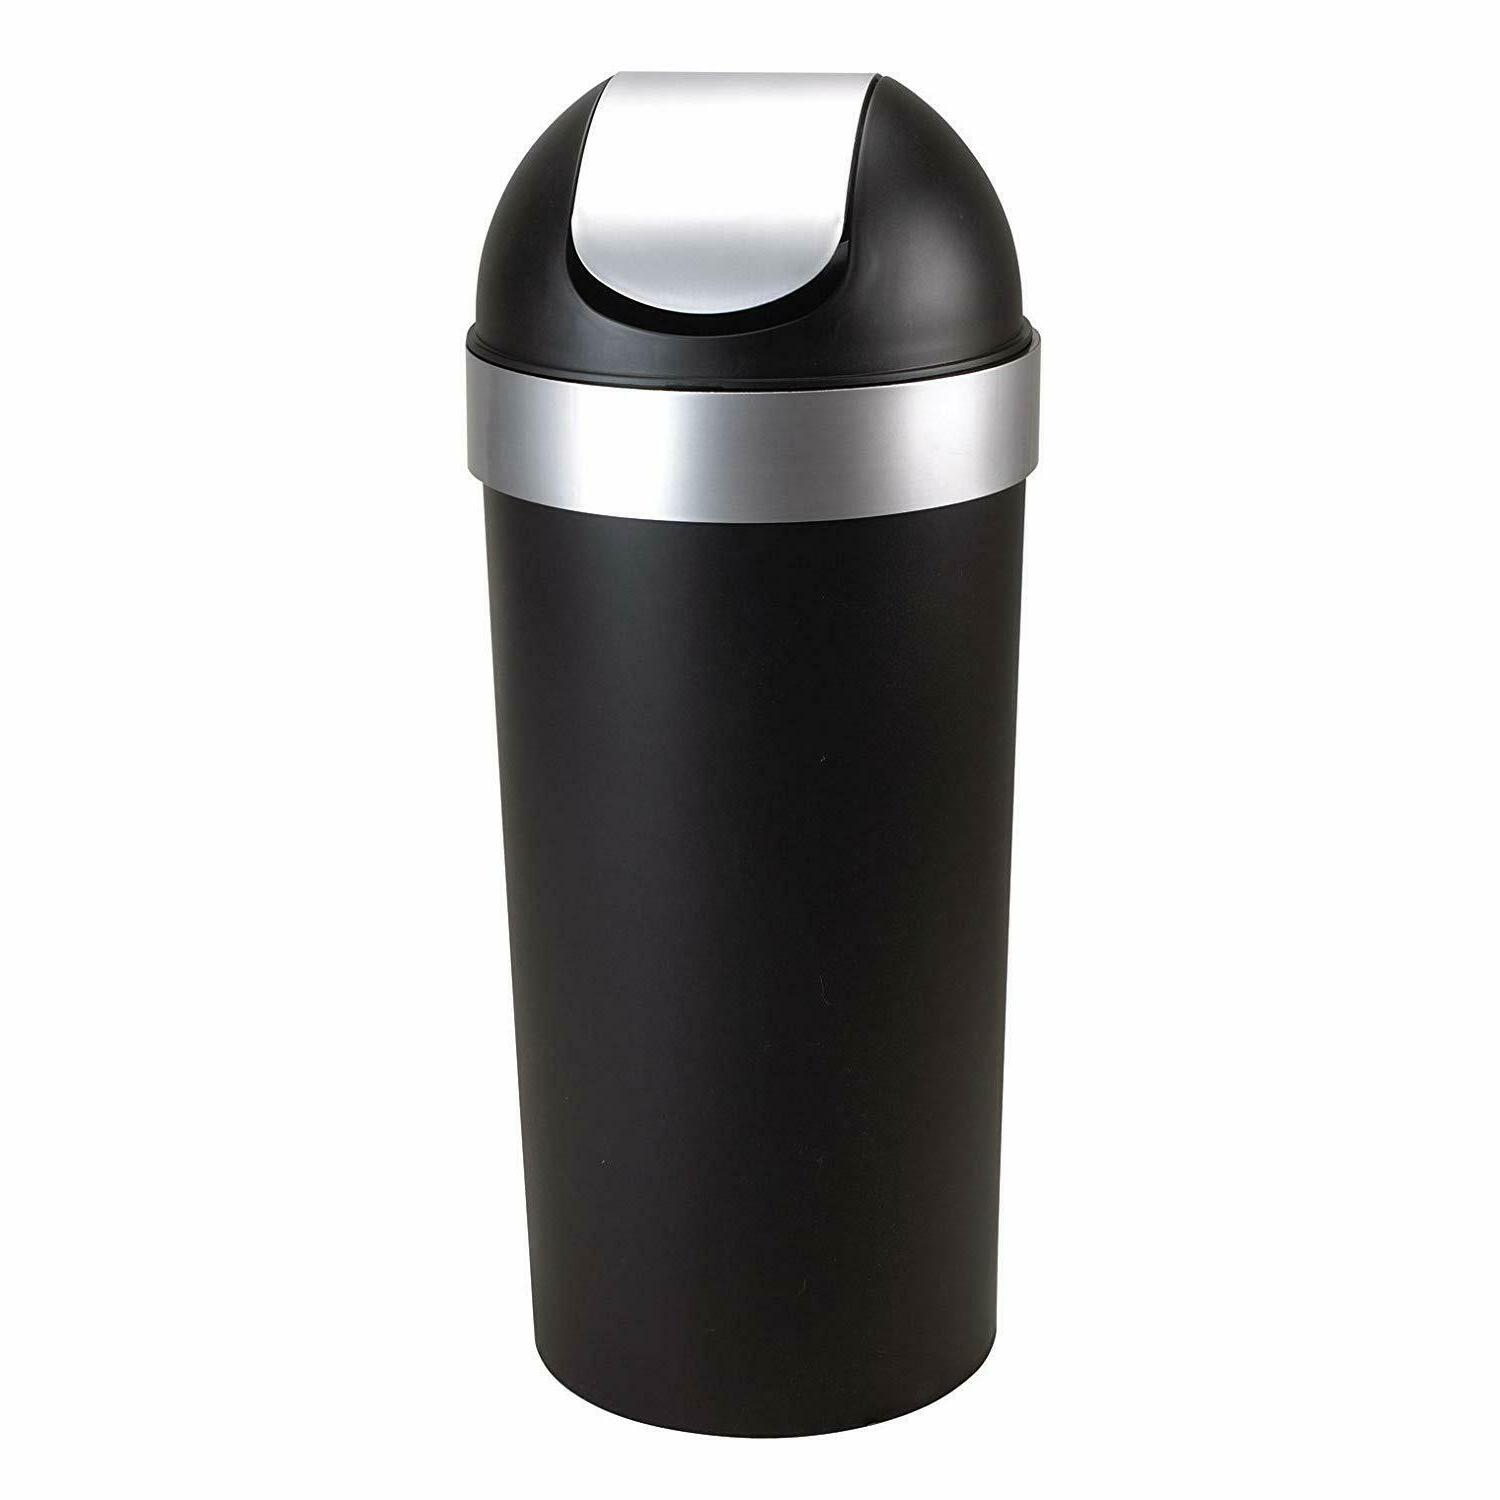 Venti 16-Gallon Swing Top Kitchen Trash Can – Large, 35-in